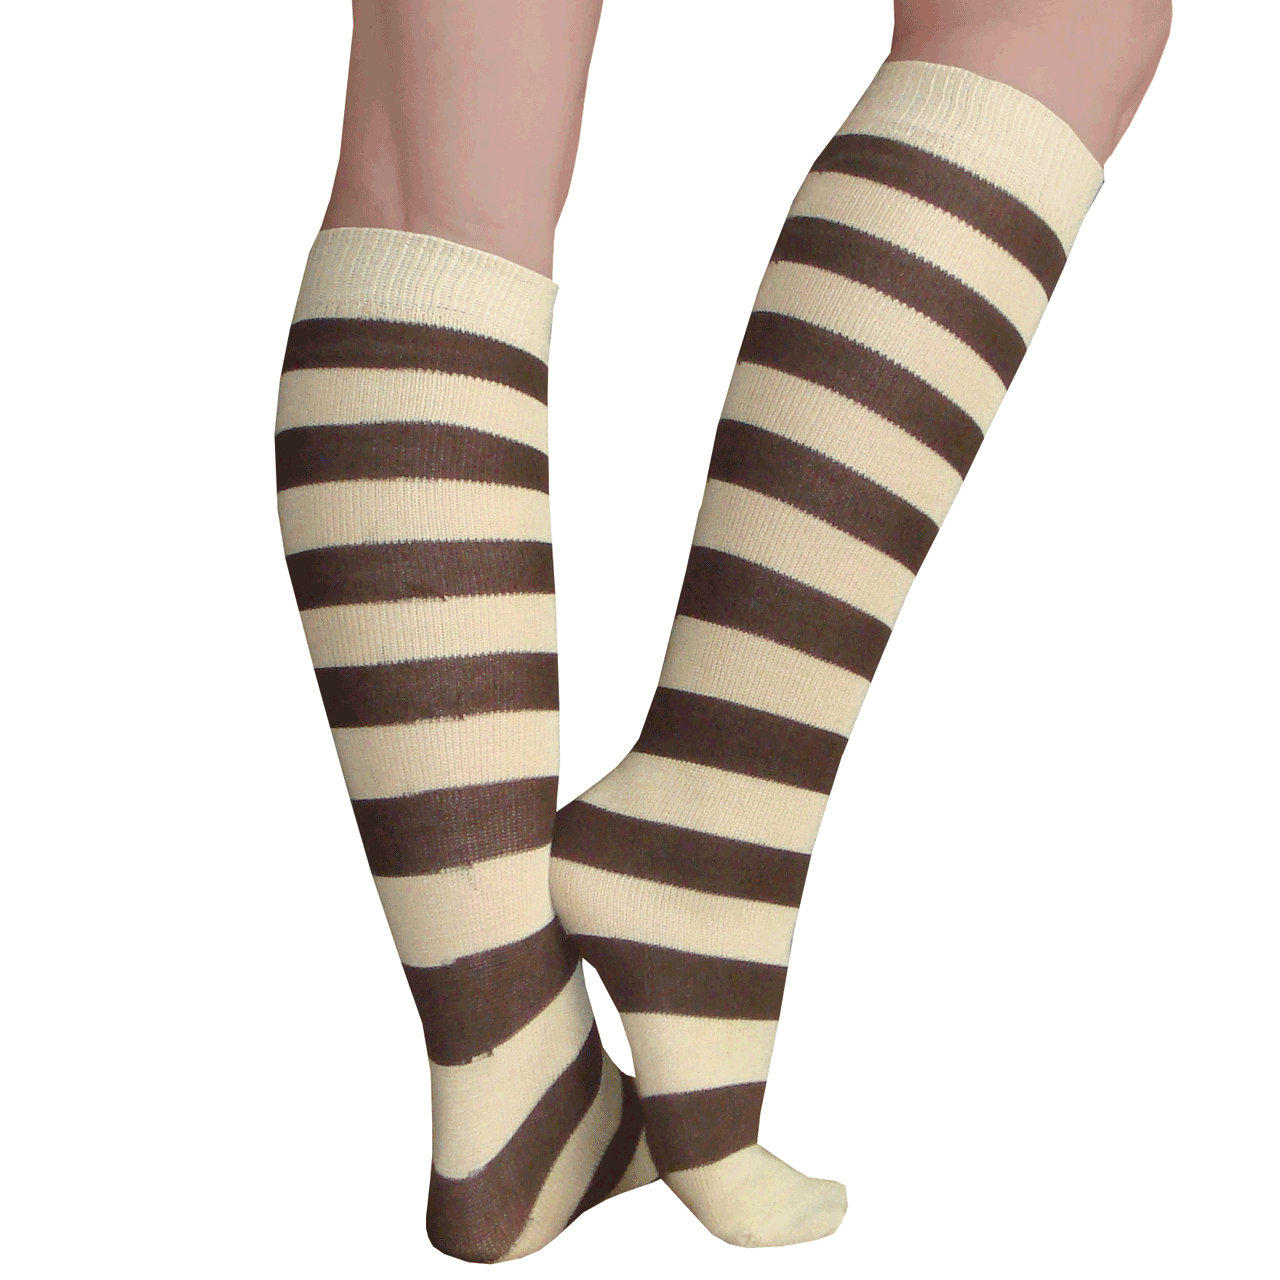 62e6f5a4953 Striped Brown Tan Knee High Socks